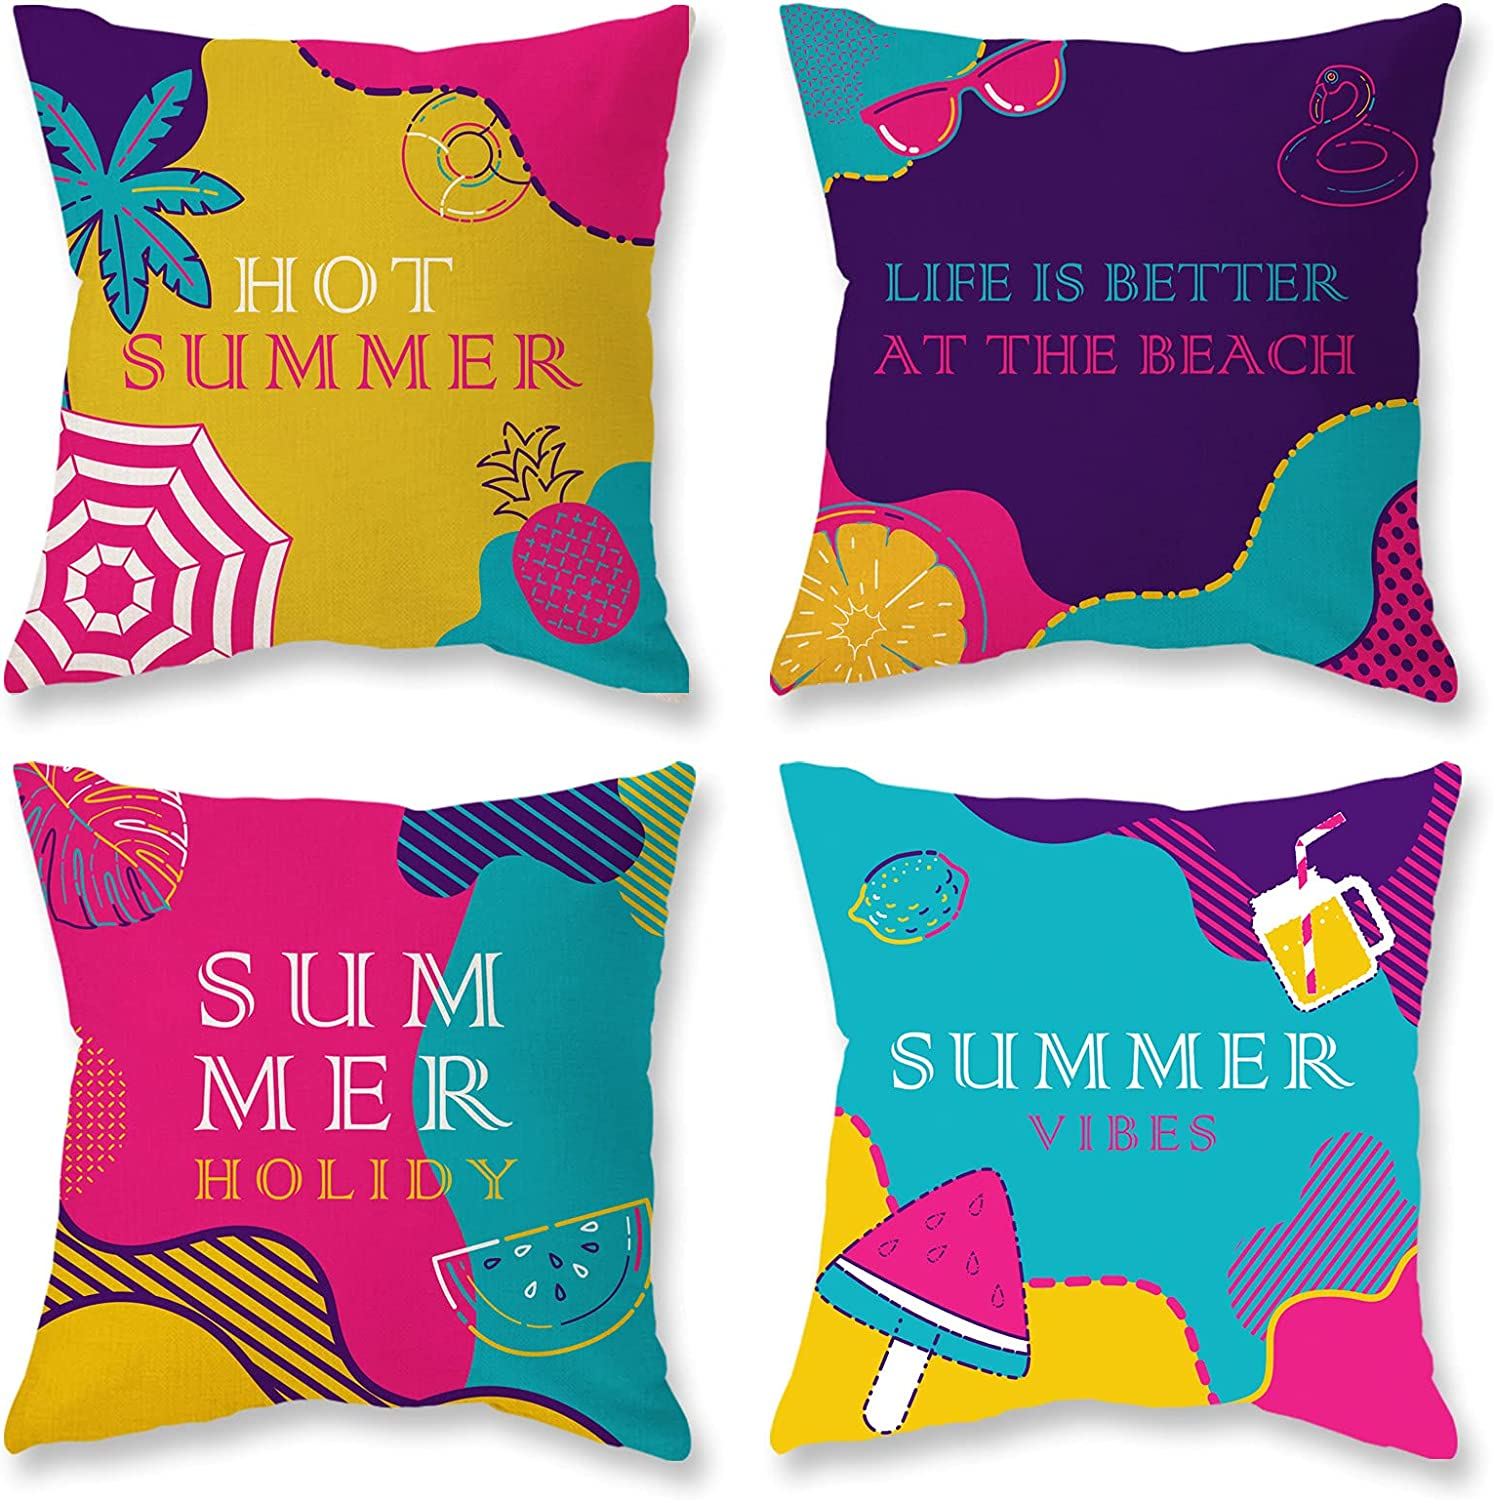 ONWAY Summer Pillow Covers 18x18 Inch Set of 4 Outdoor Decorative Throw Pillow Cases Ice Cream Pineapple Lemon Watermelon Linen Cushion Cover for Sofa, Couch, Bed and Patio Furniture